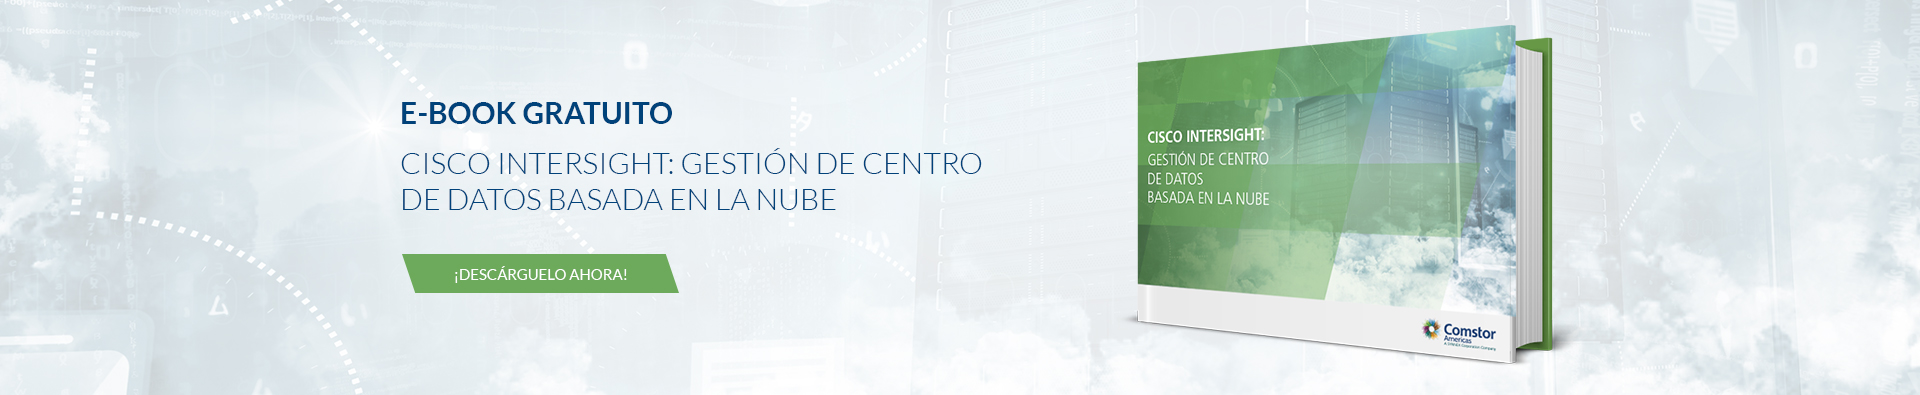 Cisco Intersight: gestión de centro de datos basada en la nube